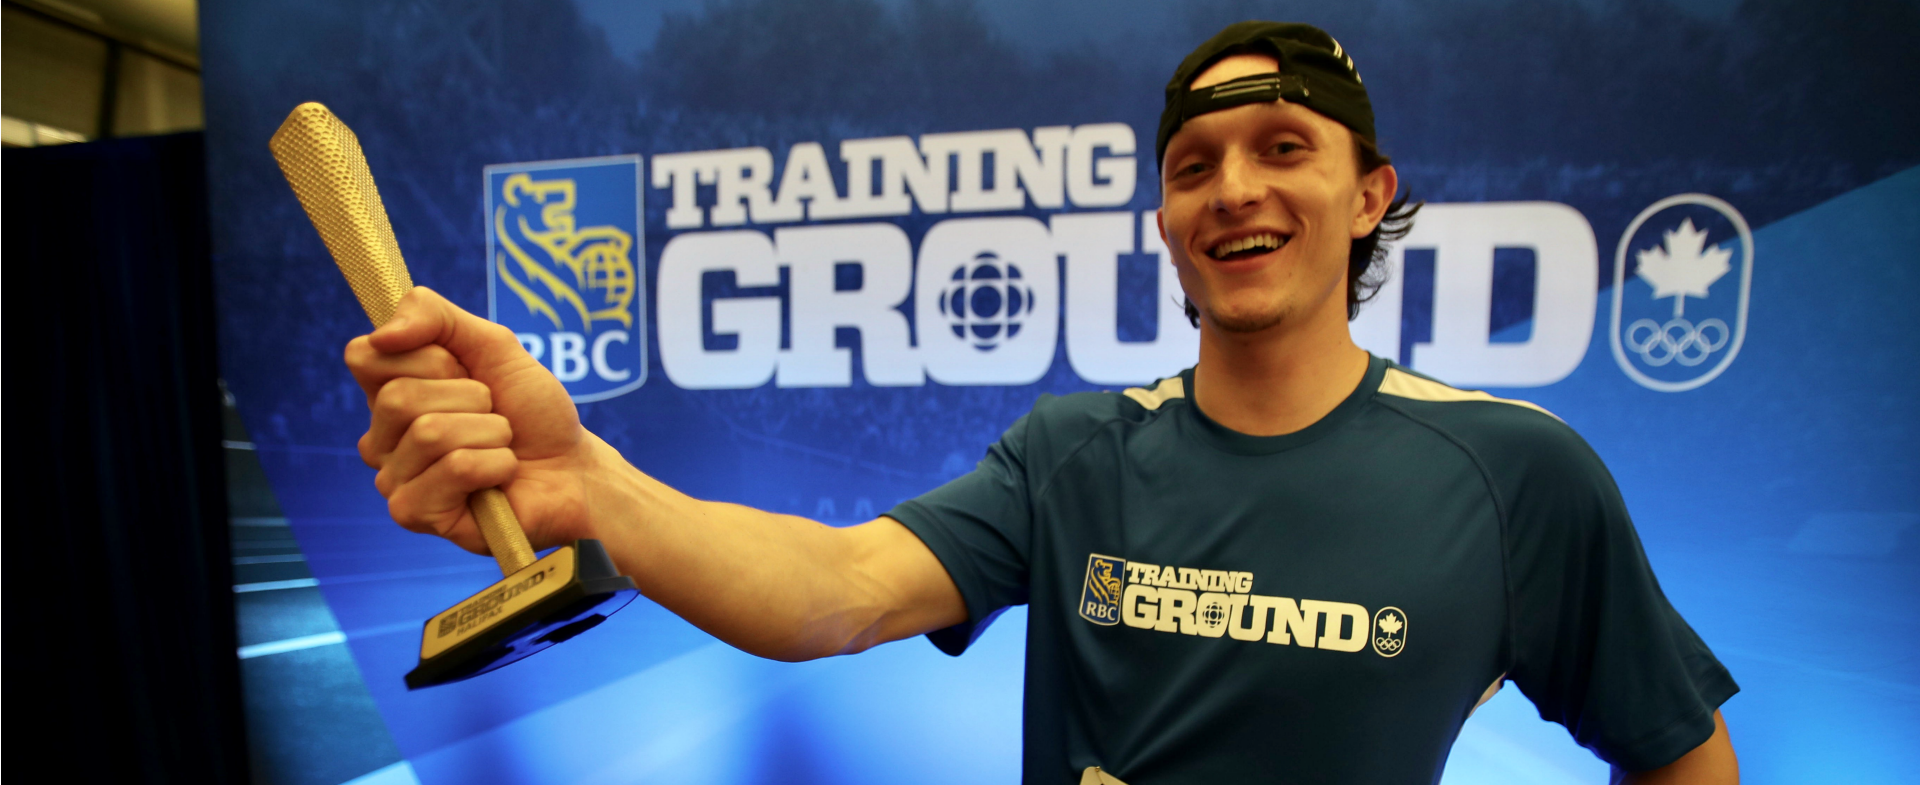 Wood wins RBC Training Ground Atlantic